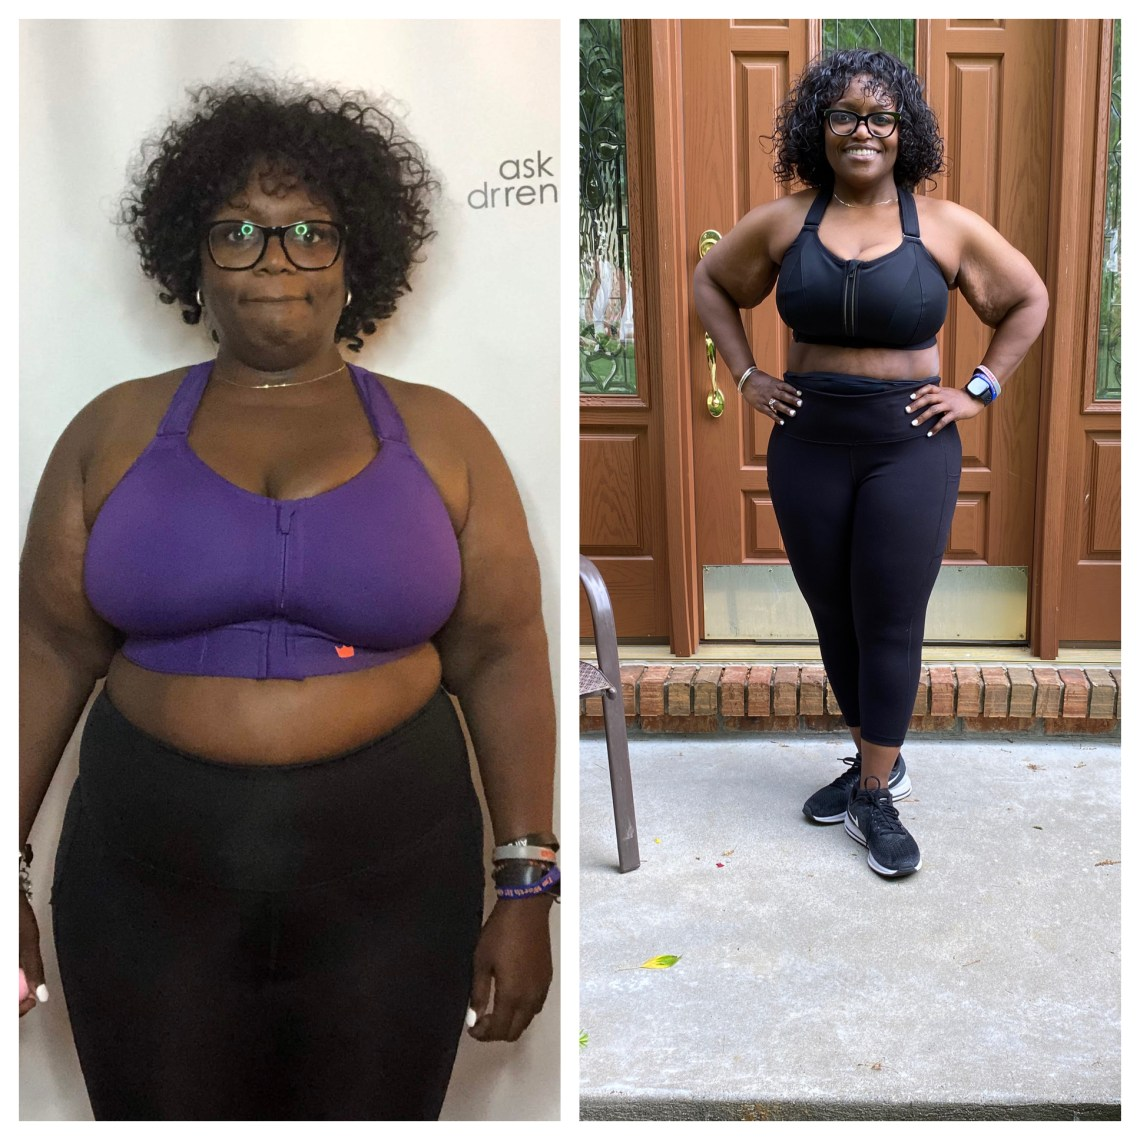 ask dr. renee, before & after, incredibleshrinkingdoc, fat loss, weight loss, weight watchers, hidrate, Renpho, peloton, achievement, miles, scale, health, transformation, water, food